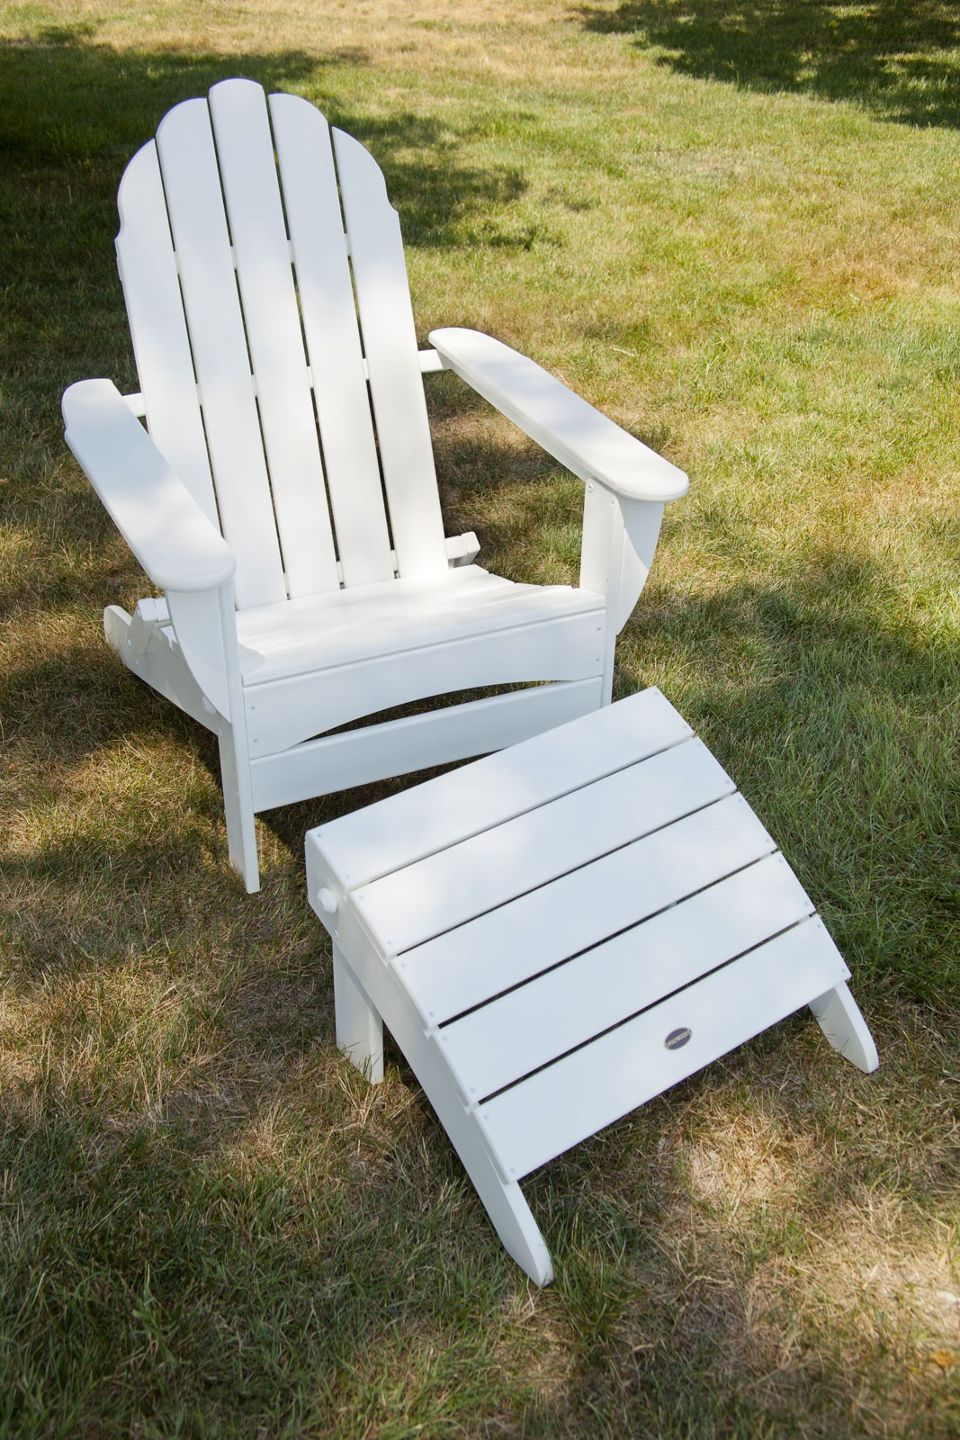 POLYWOOD Adirondack Chairs  POLYWOOD Outdoor Chairs